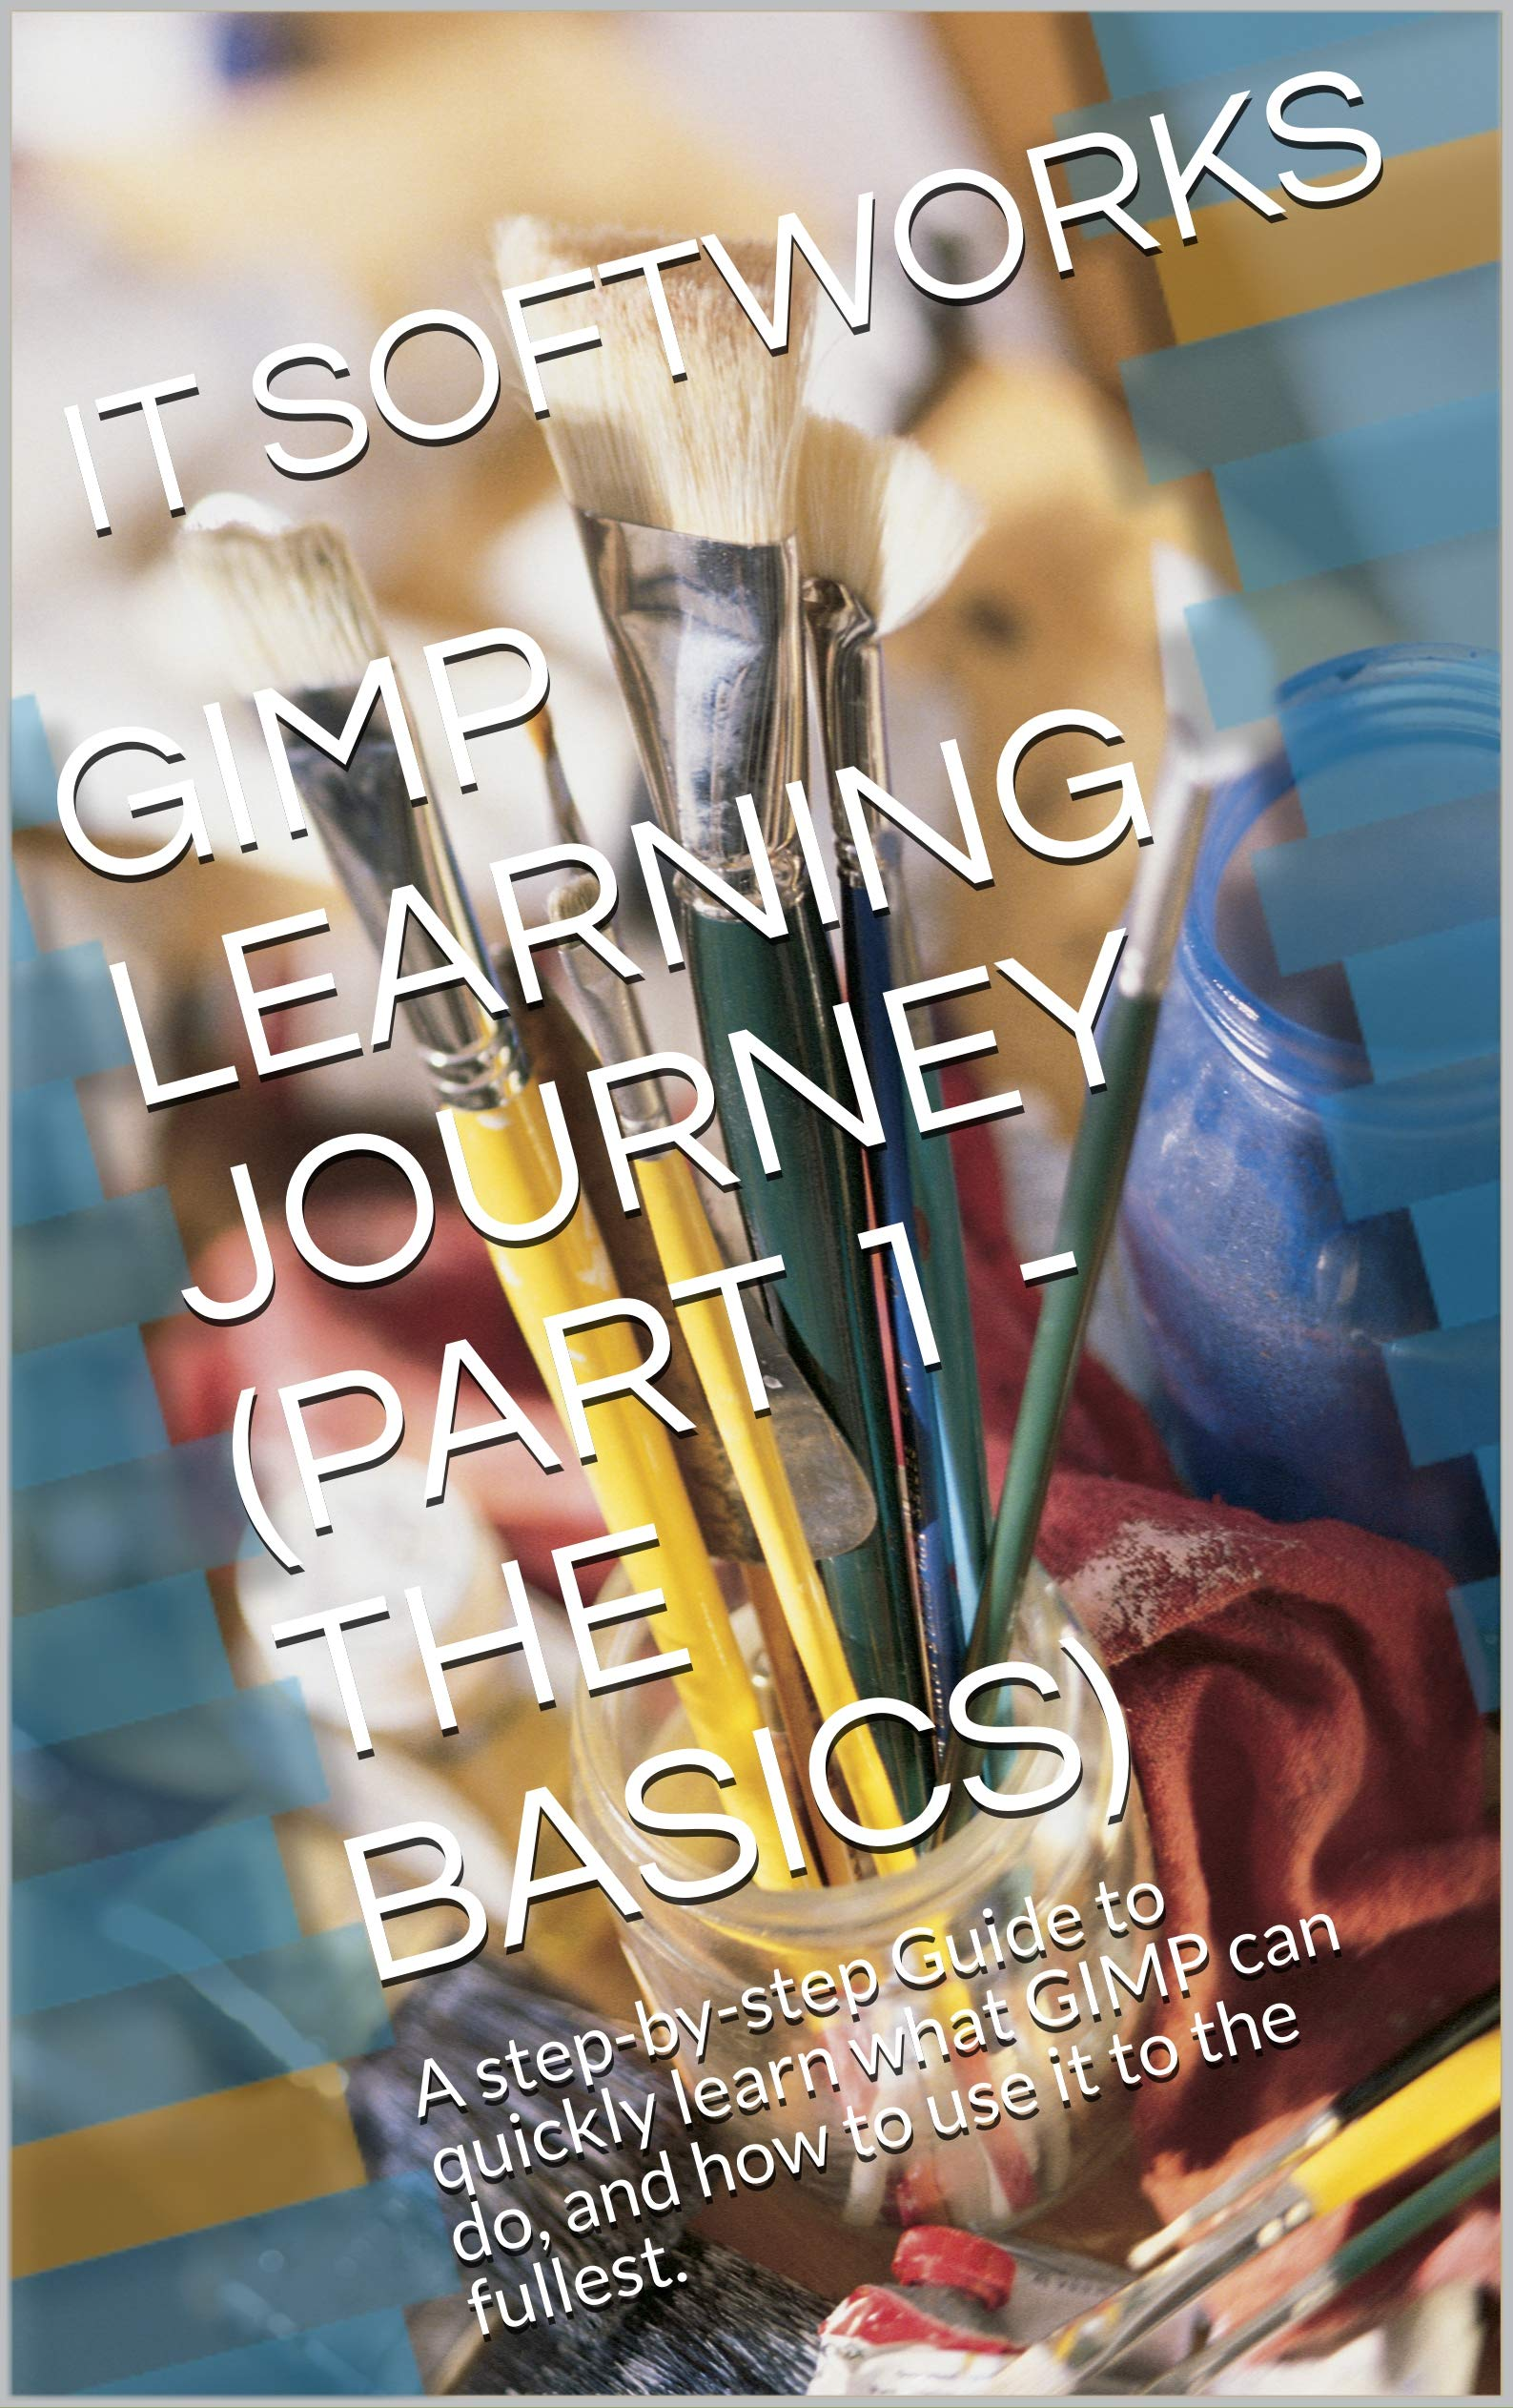 GIMP LEARNING JOURNEY  PART 1   THE BASICS   A Step By Step Guide To Quickly Learn What GIMP Can Do And How To Use It To The Fullest.  GIMP Journey   English Edition